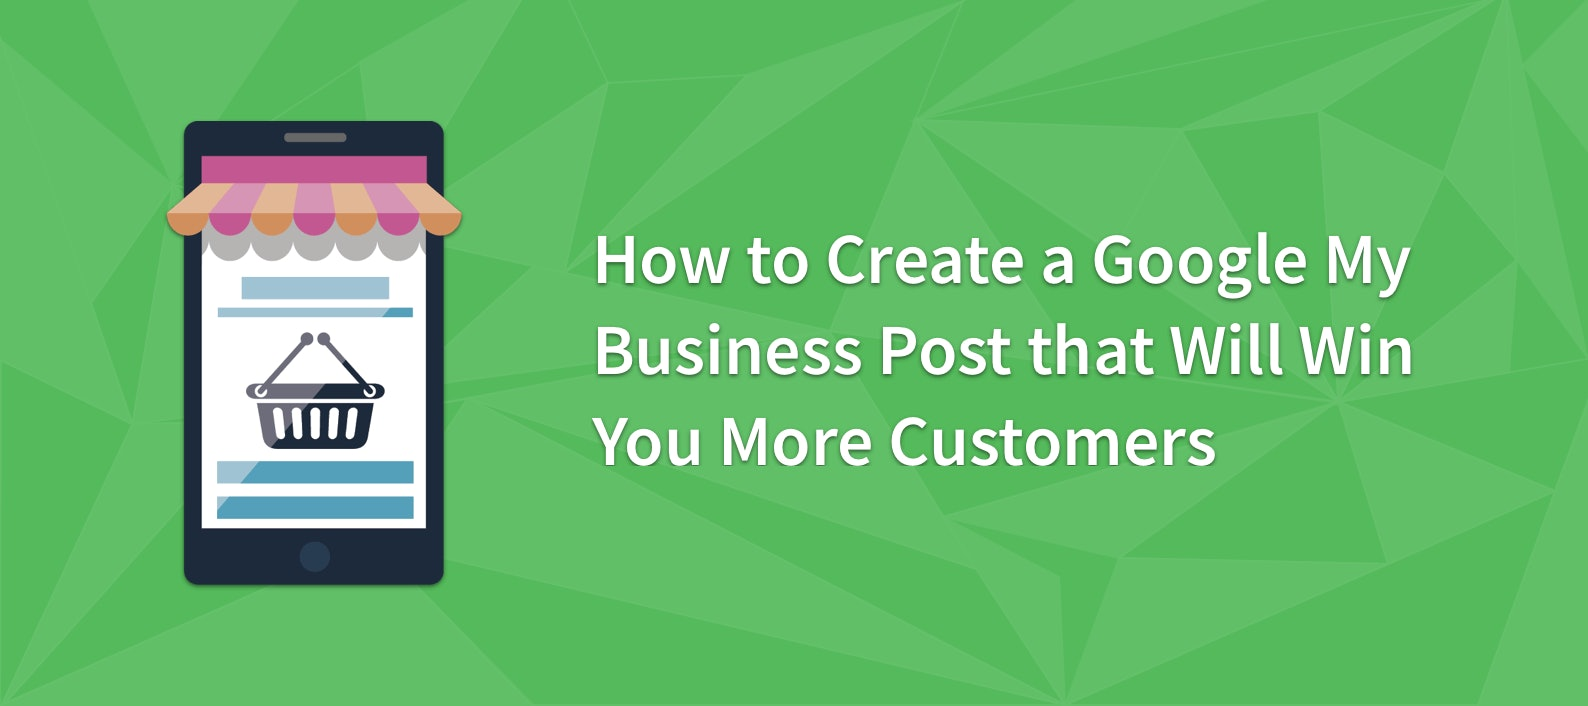 How to Create a Google My Business Post That Will Win You More Customers